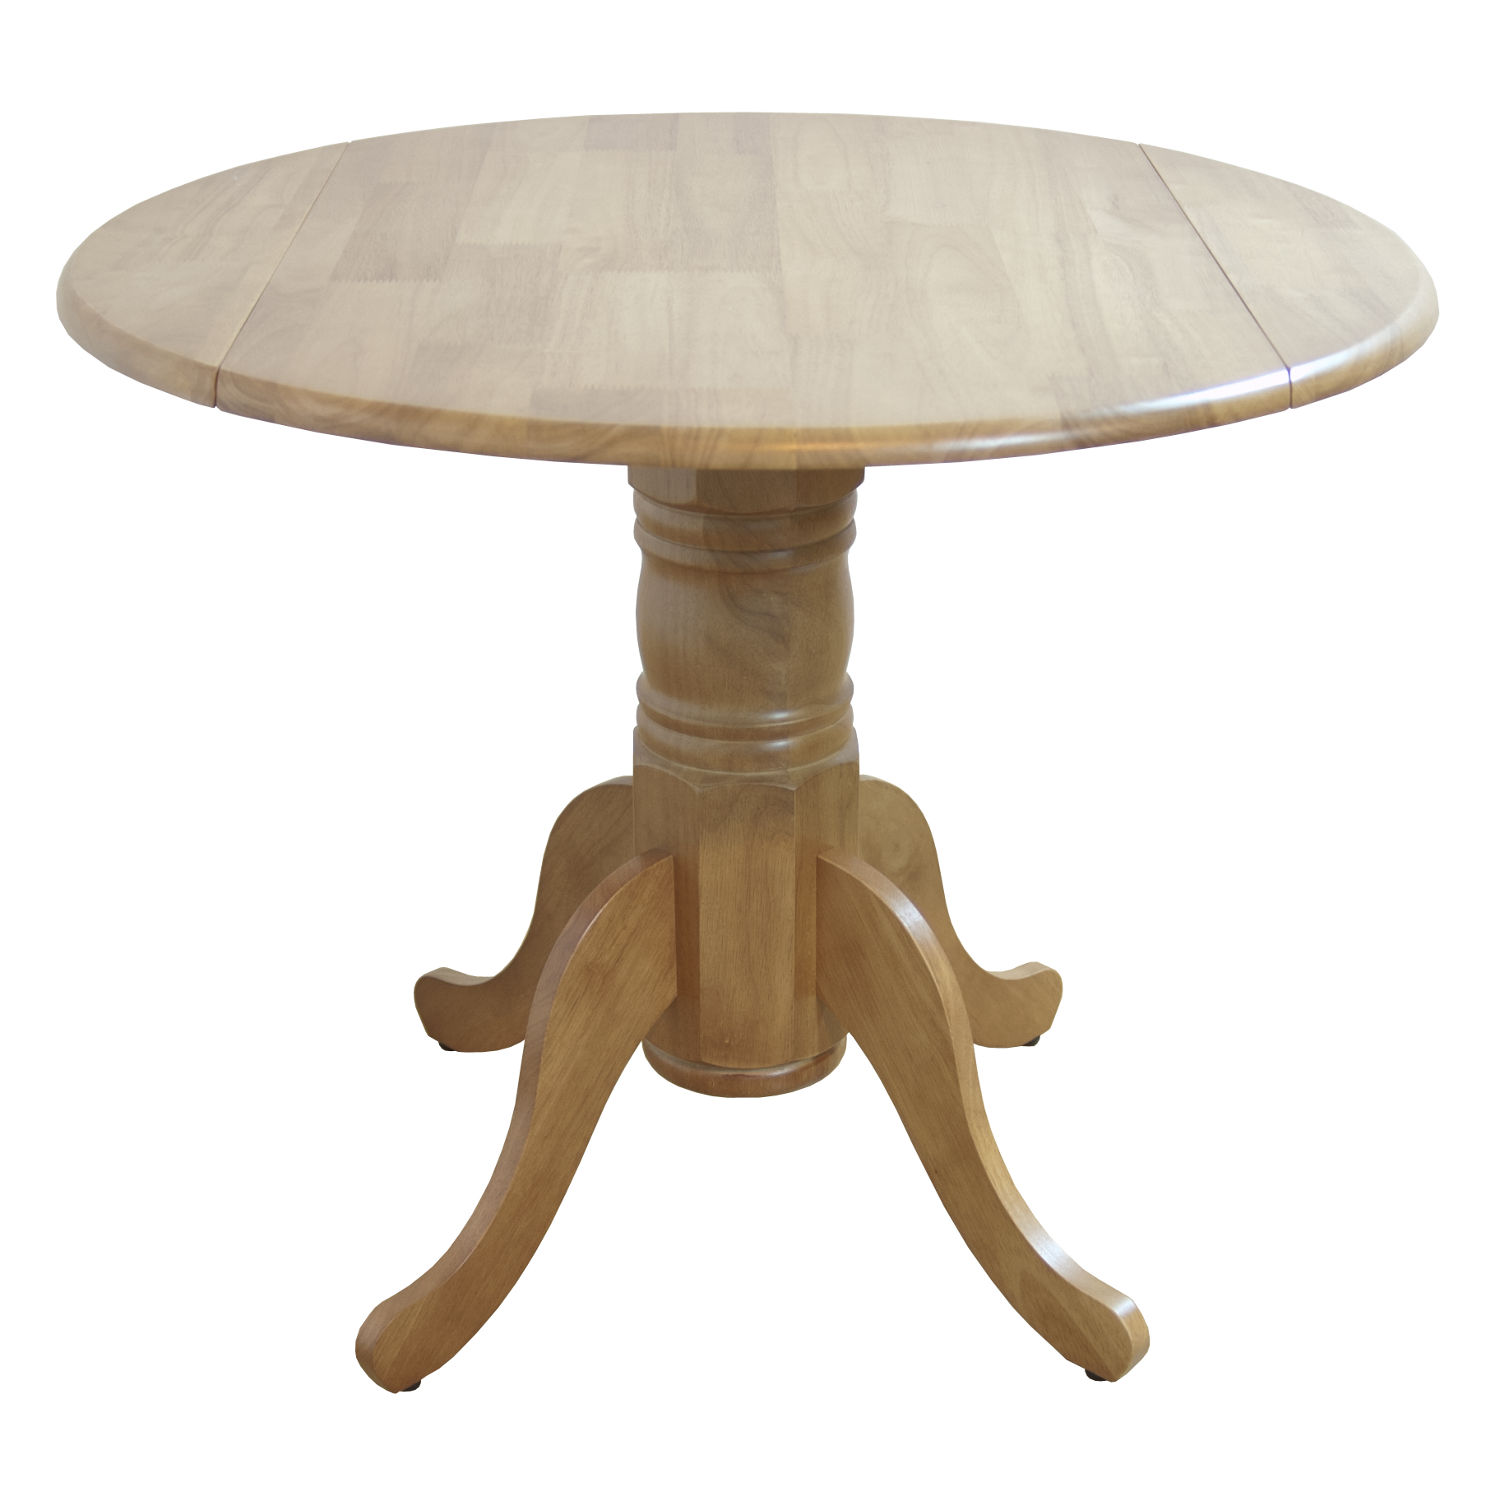 Drop leaf tables for small spaces homesfeed for Drop leaf dining table